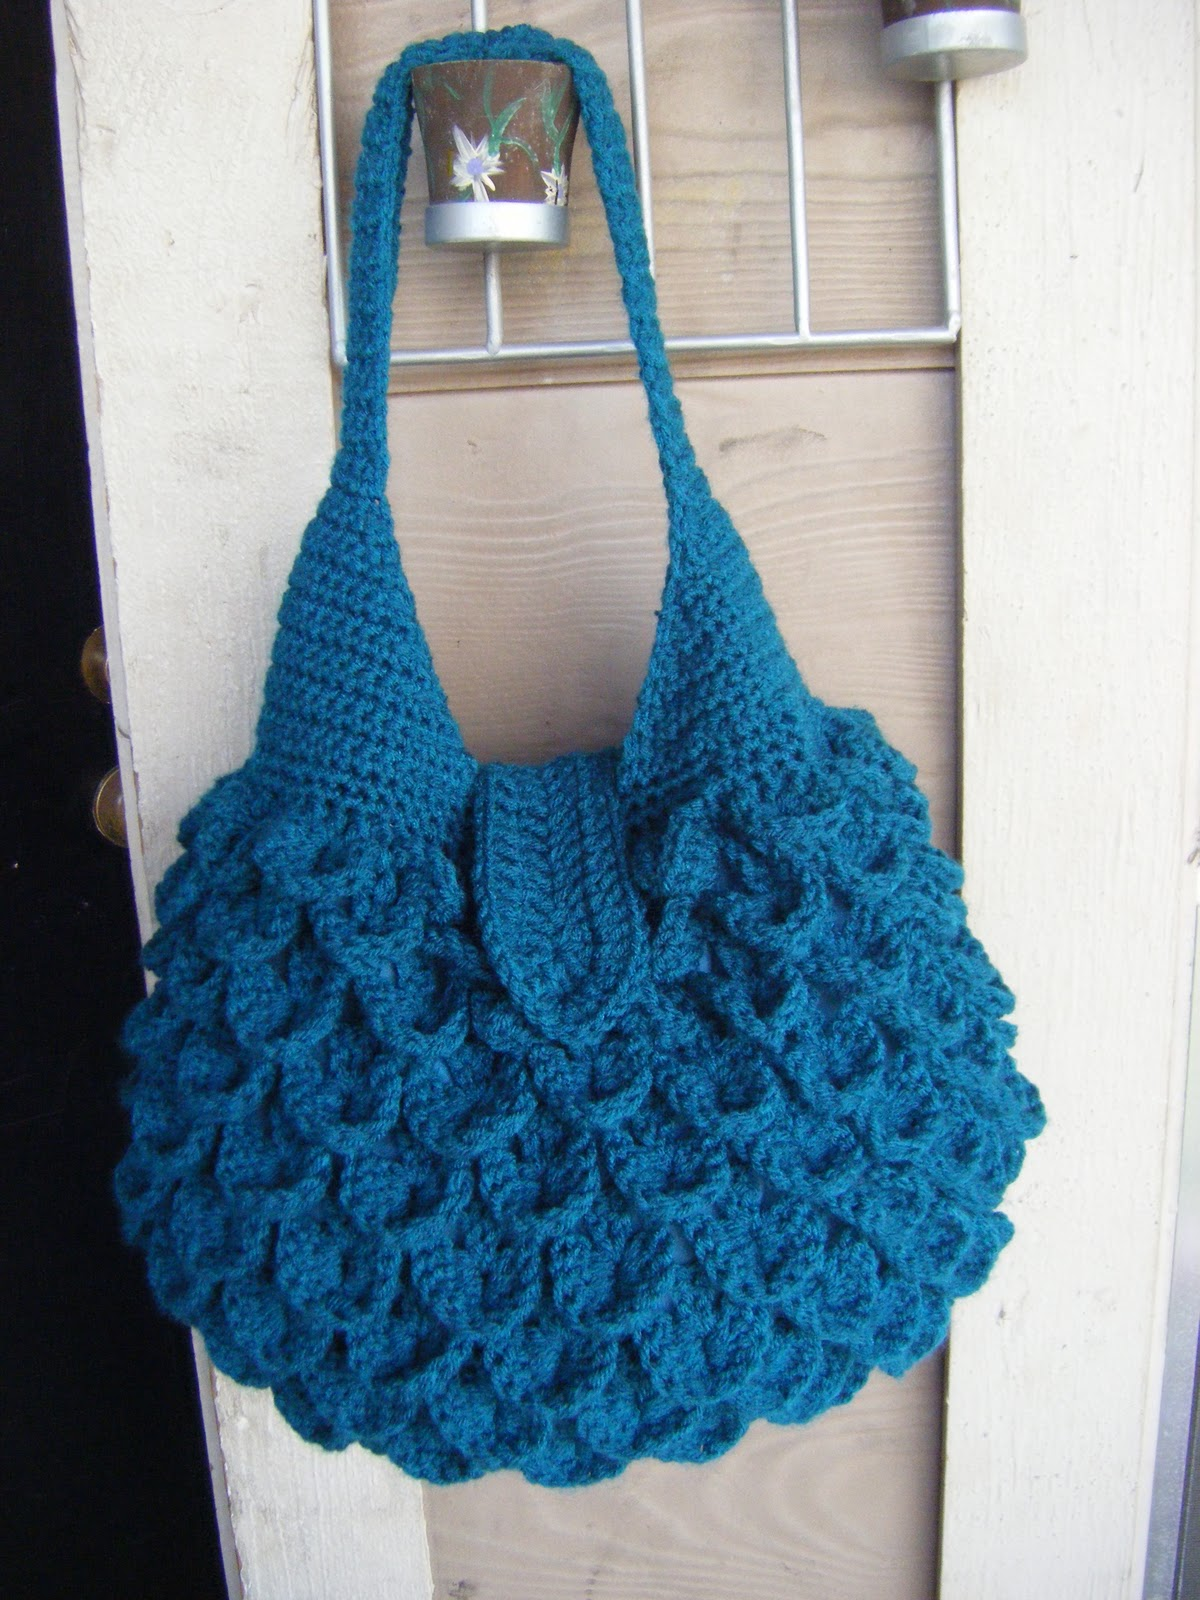 Free Patterns For Handbags : Crochet Patterns: Diaper Bags - Free Crochet Patterns